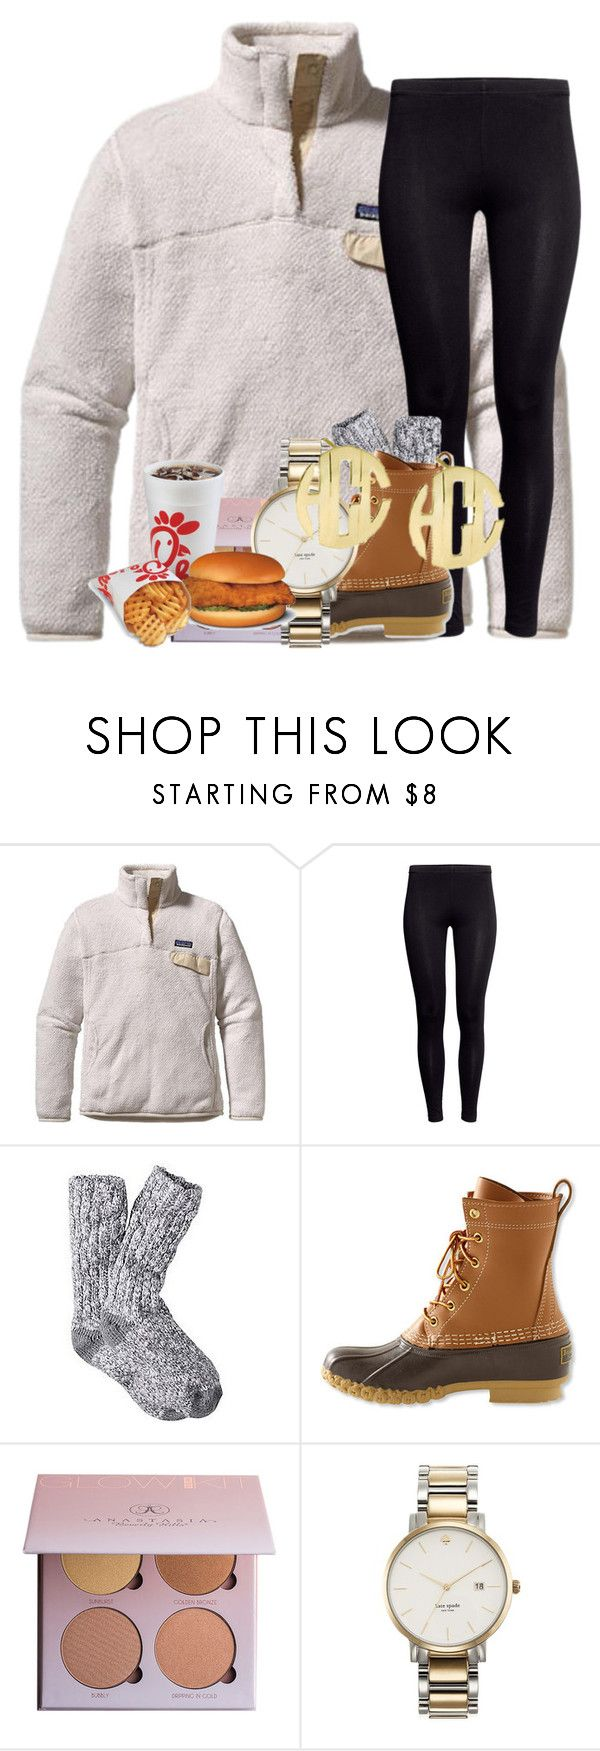 """I had chick fil a for valentines day"" by ctaylor78 ❤ liked on Polyvore featuring Patagonia, H&M, L.L.Bean and Kate Spade"